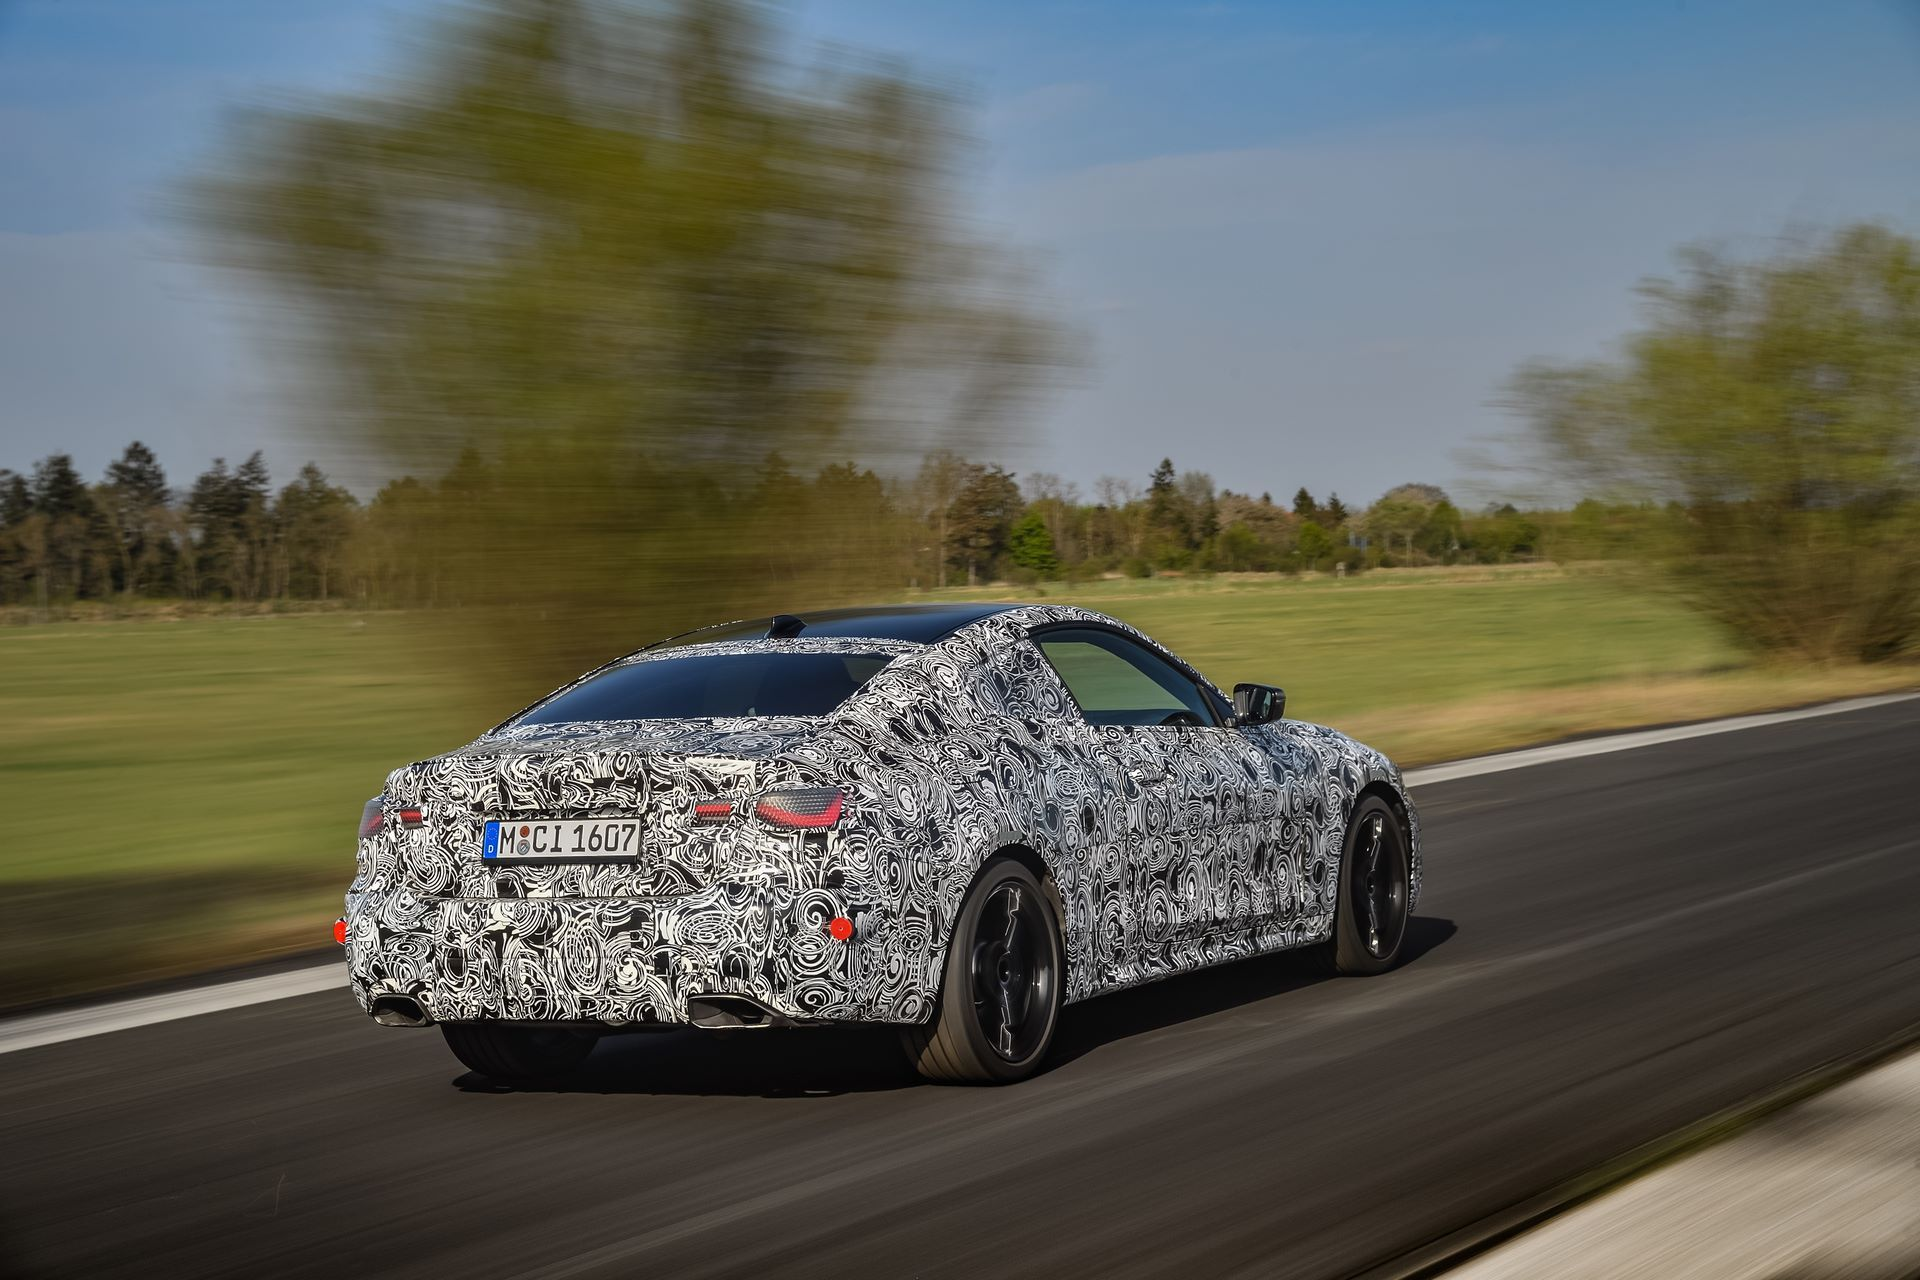 BMW-4-Series-M440i-camouflaged-17